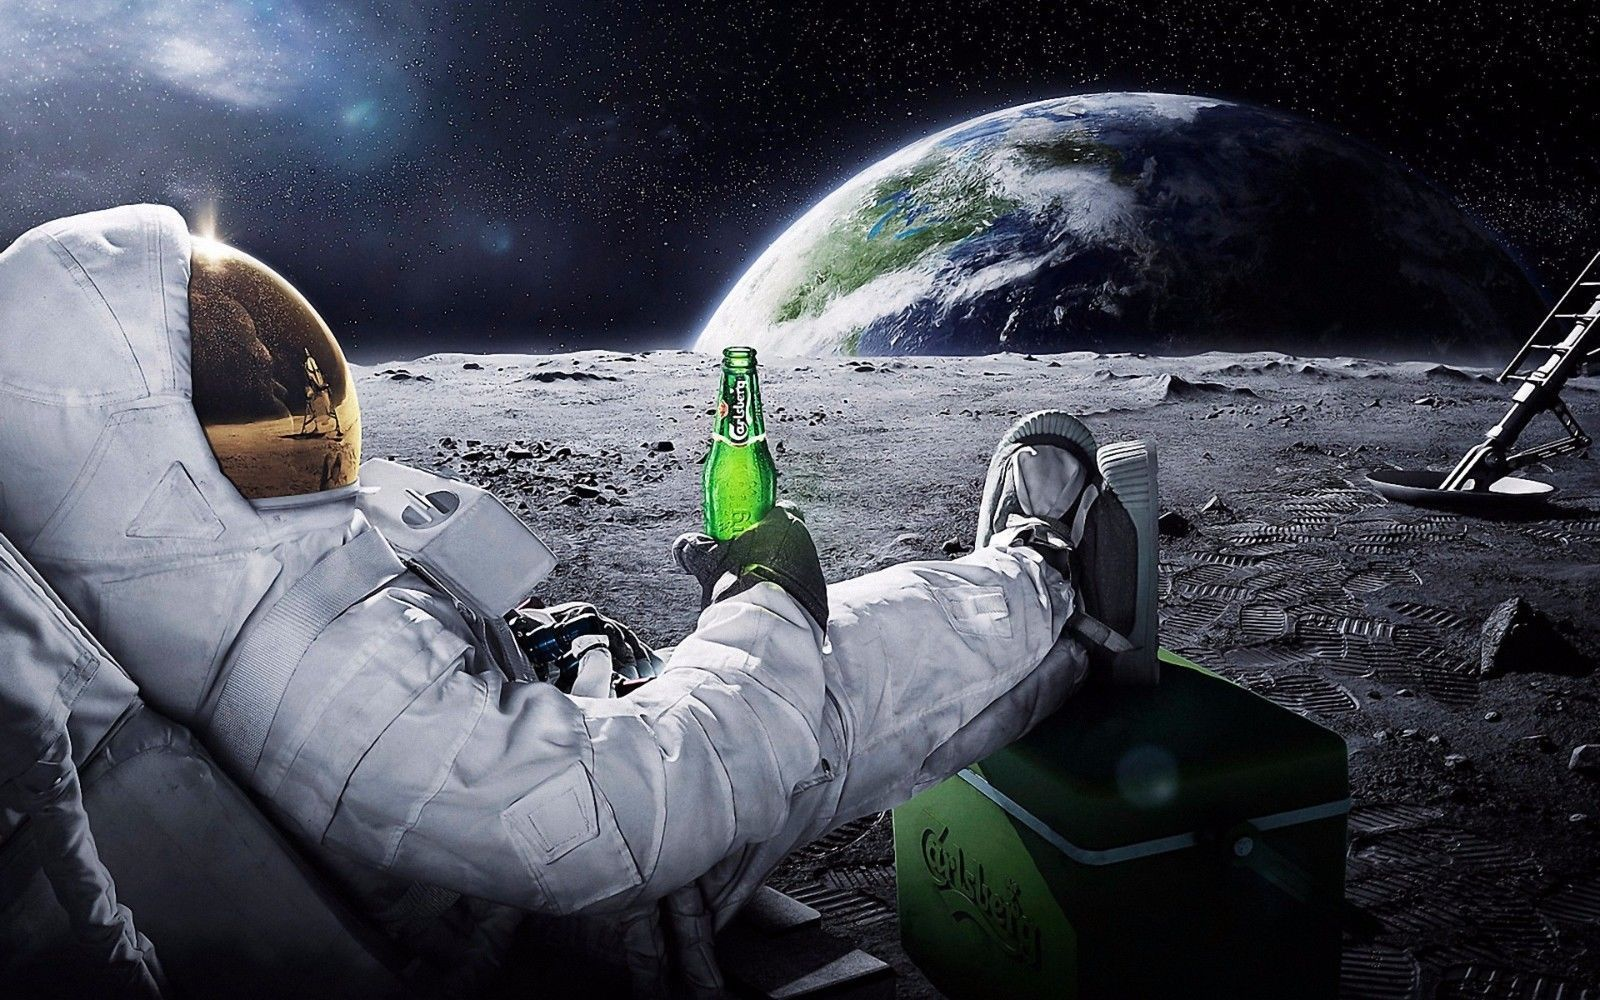 Astronaut on the moon with beer 24 X 36 inch Poster, wall decor, mars, nasa